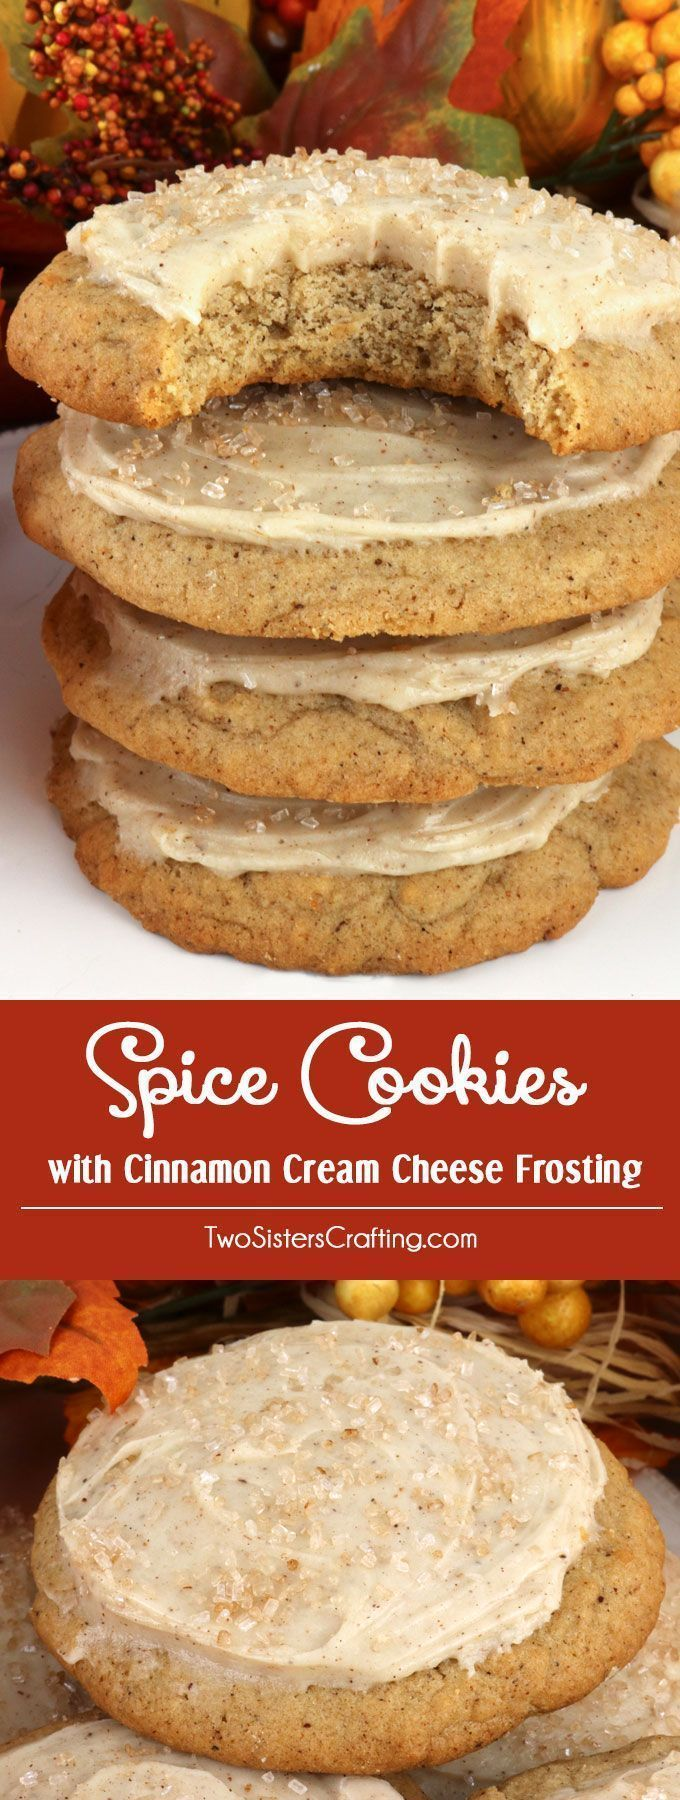 Spice Cookies with Cinnamon Cream Cheese Frosting - a light and fluffy spice cookie topped with delicious Cinnamon Cream Cheese Frosting that is perfect for Fall. This unique and tasty Thanksgiving frosted cookie would be great Thanksgiving dessert idea for a potluck dinner, a fall bake sale or a Christmas Cookie exchange. Pin this delicious cookie recipe for later and follow us for more great Thanksgiving Food ideas. #bakesaleideas